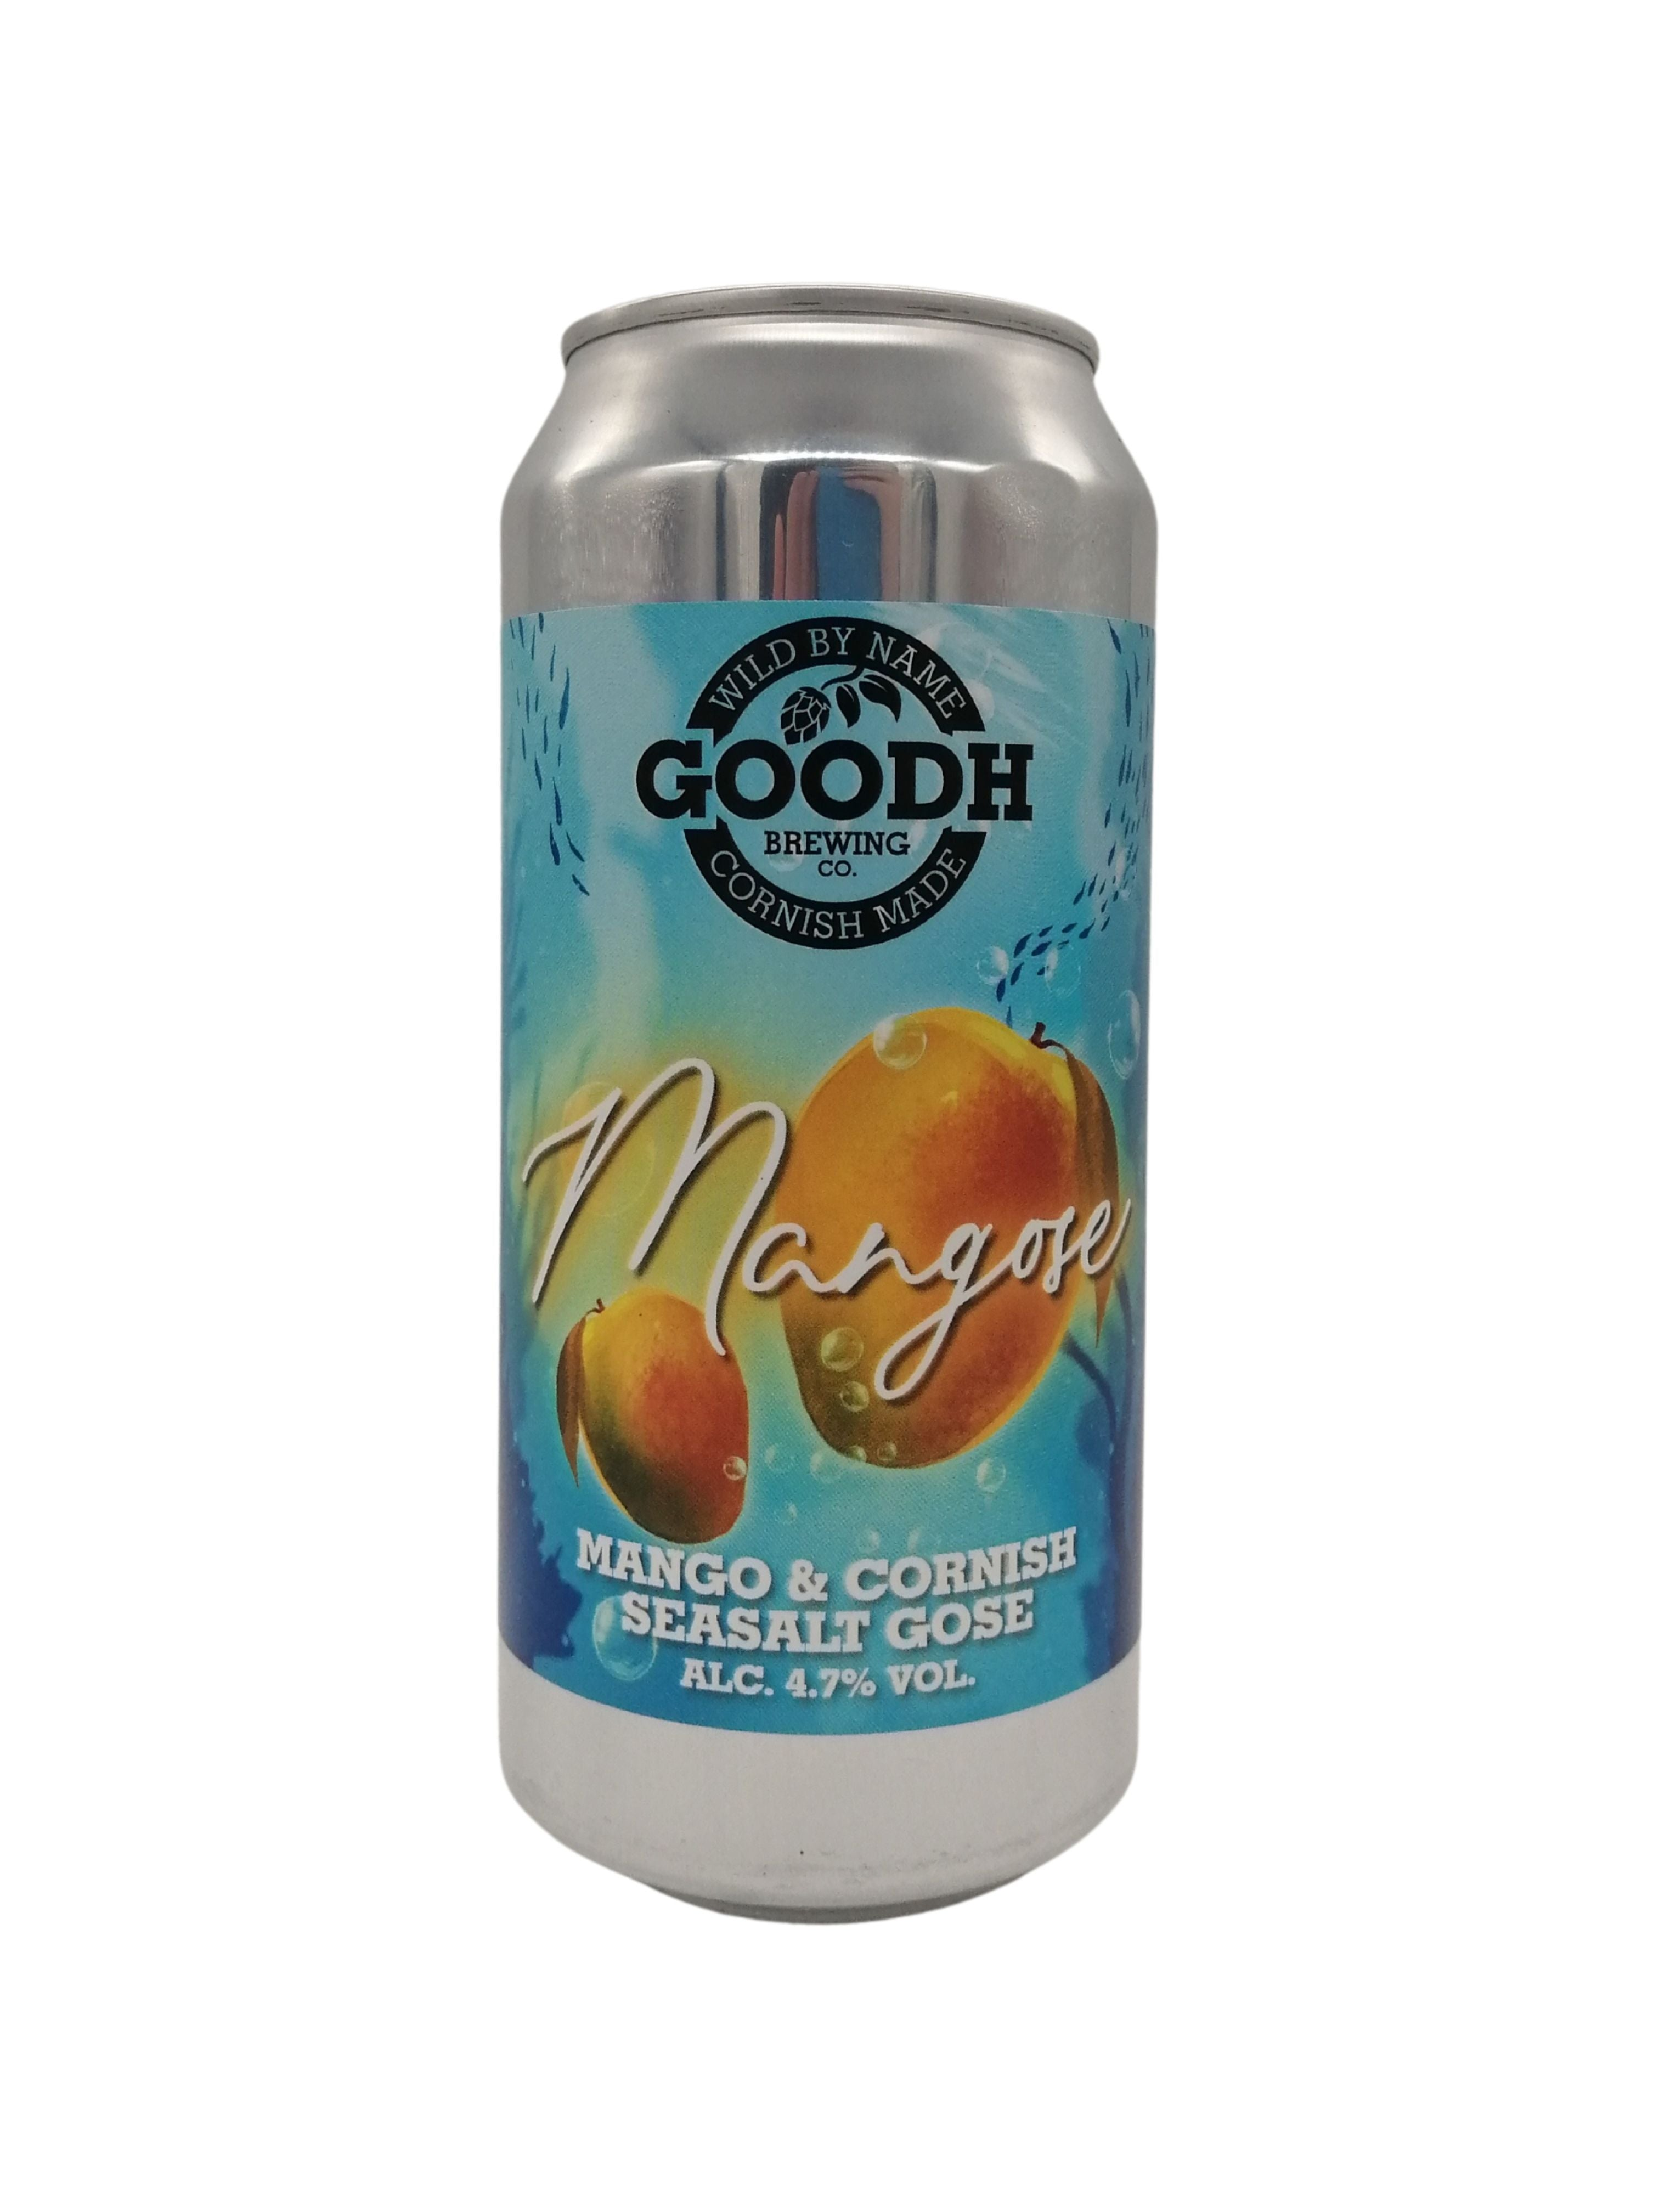 Goodh Brewing - Mangose - Sour - 4.7% (Brand New)